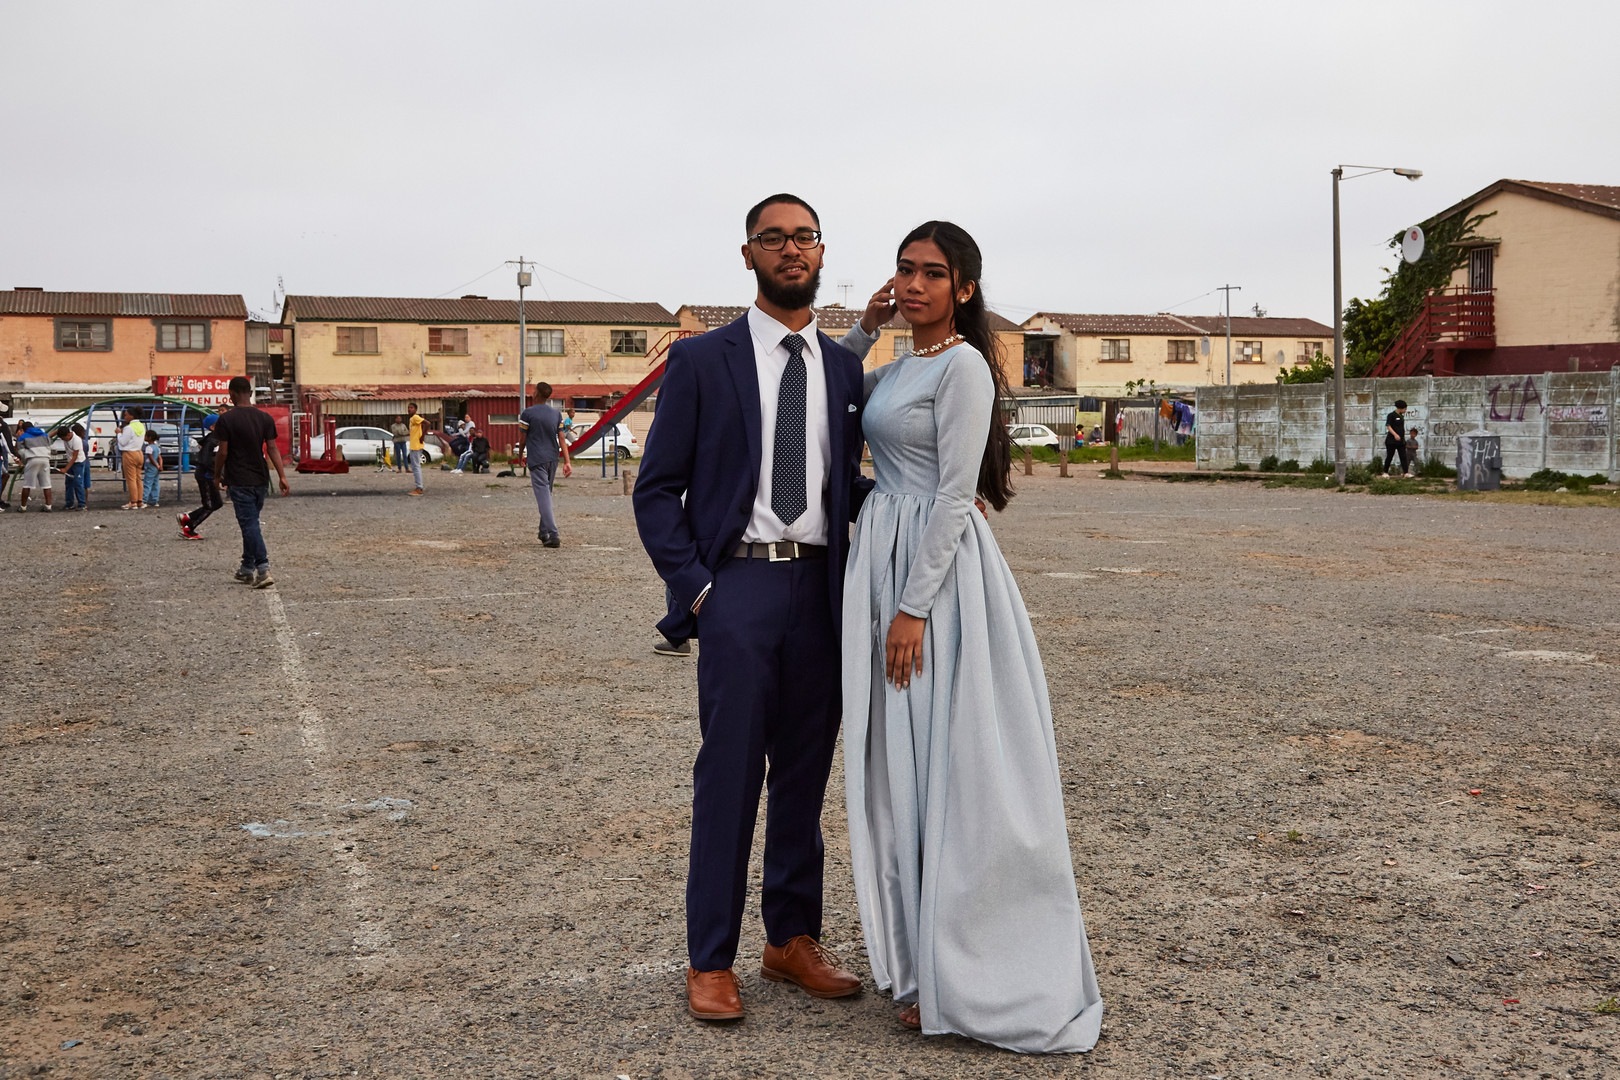 """Shakeelah Davids (19) who attended Wynberg High School poses with her date Daniel Laun in Parkwood where she grew up, in a dress made by a family friend. She is the eldest of 3 siblings and the second to finish high school, after her mom. In 2020 she wants to study interior design and she aspires to create a better life for herself and her family.   """"The youth need to find inspiration and aspiration. Most people in my community don't aspire to anything more than what they see every day. They should aspire to greater things and want more for themselves and their families."""" 27 Sep. 2019"""